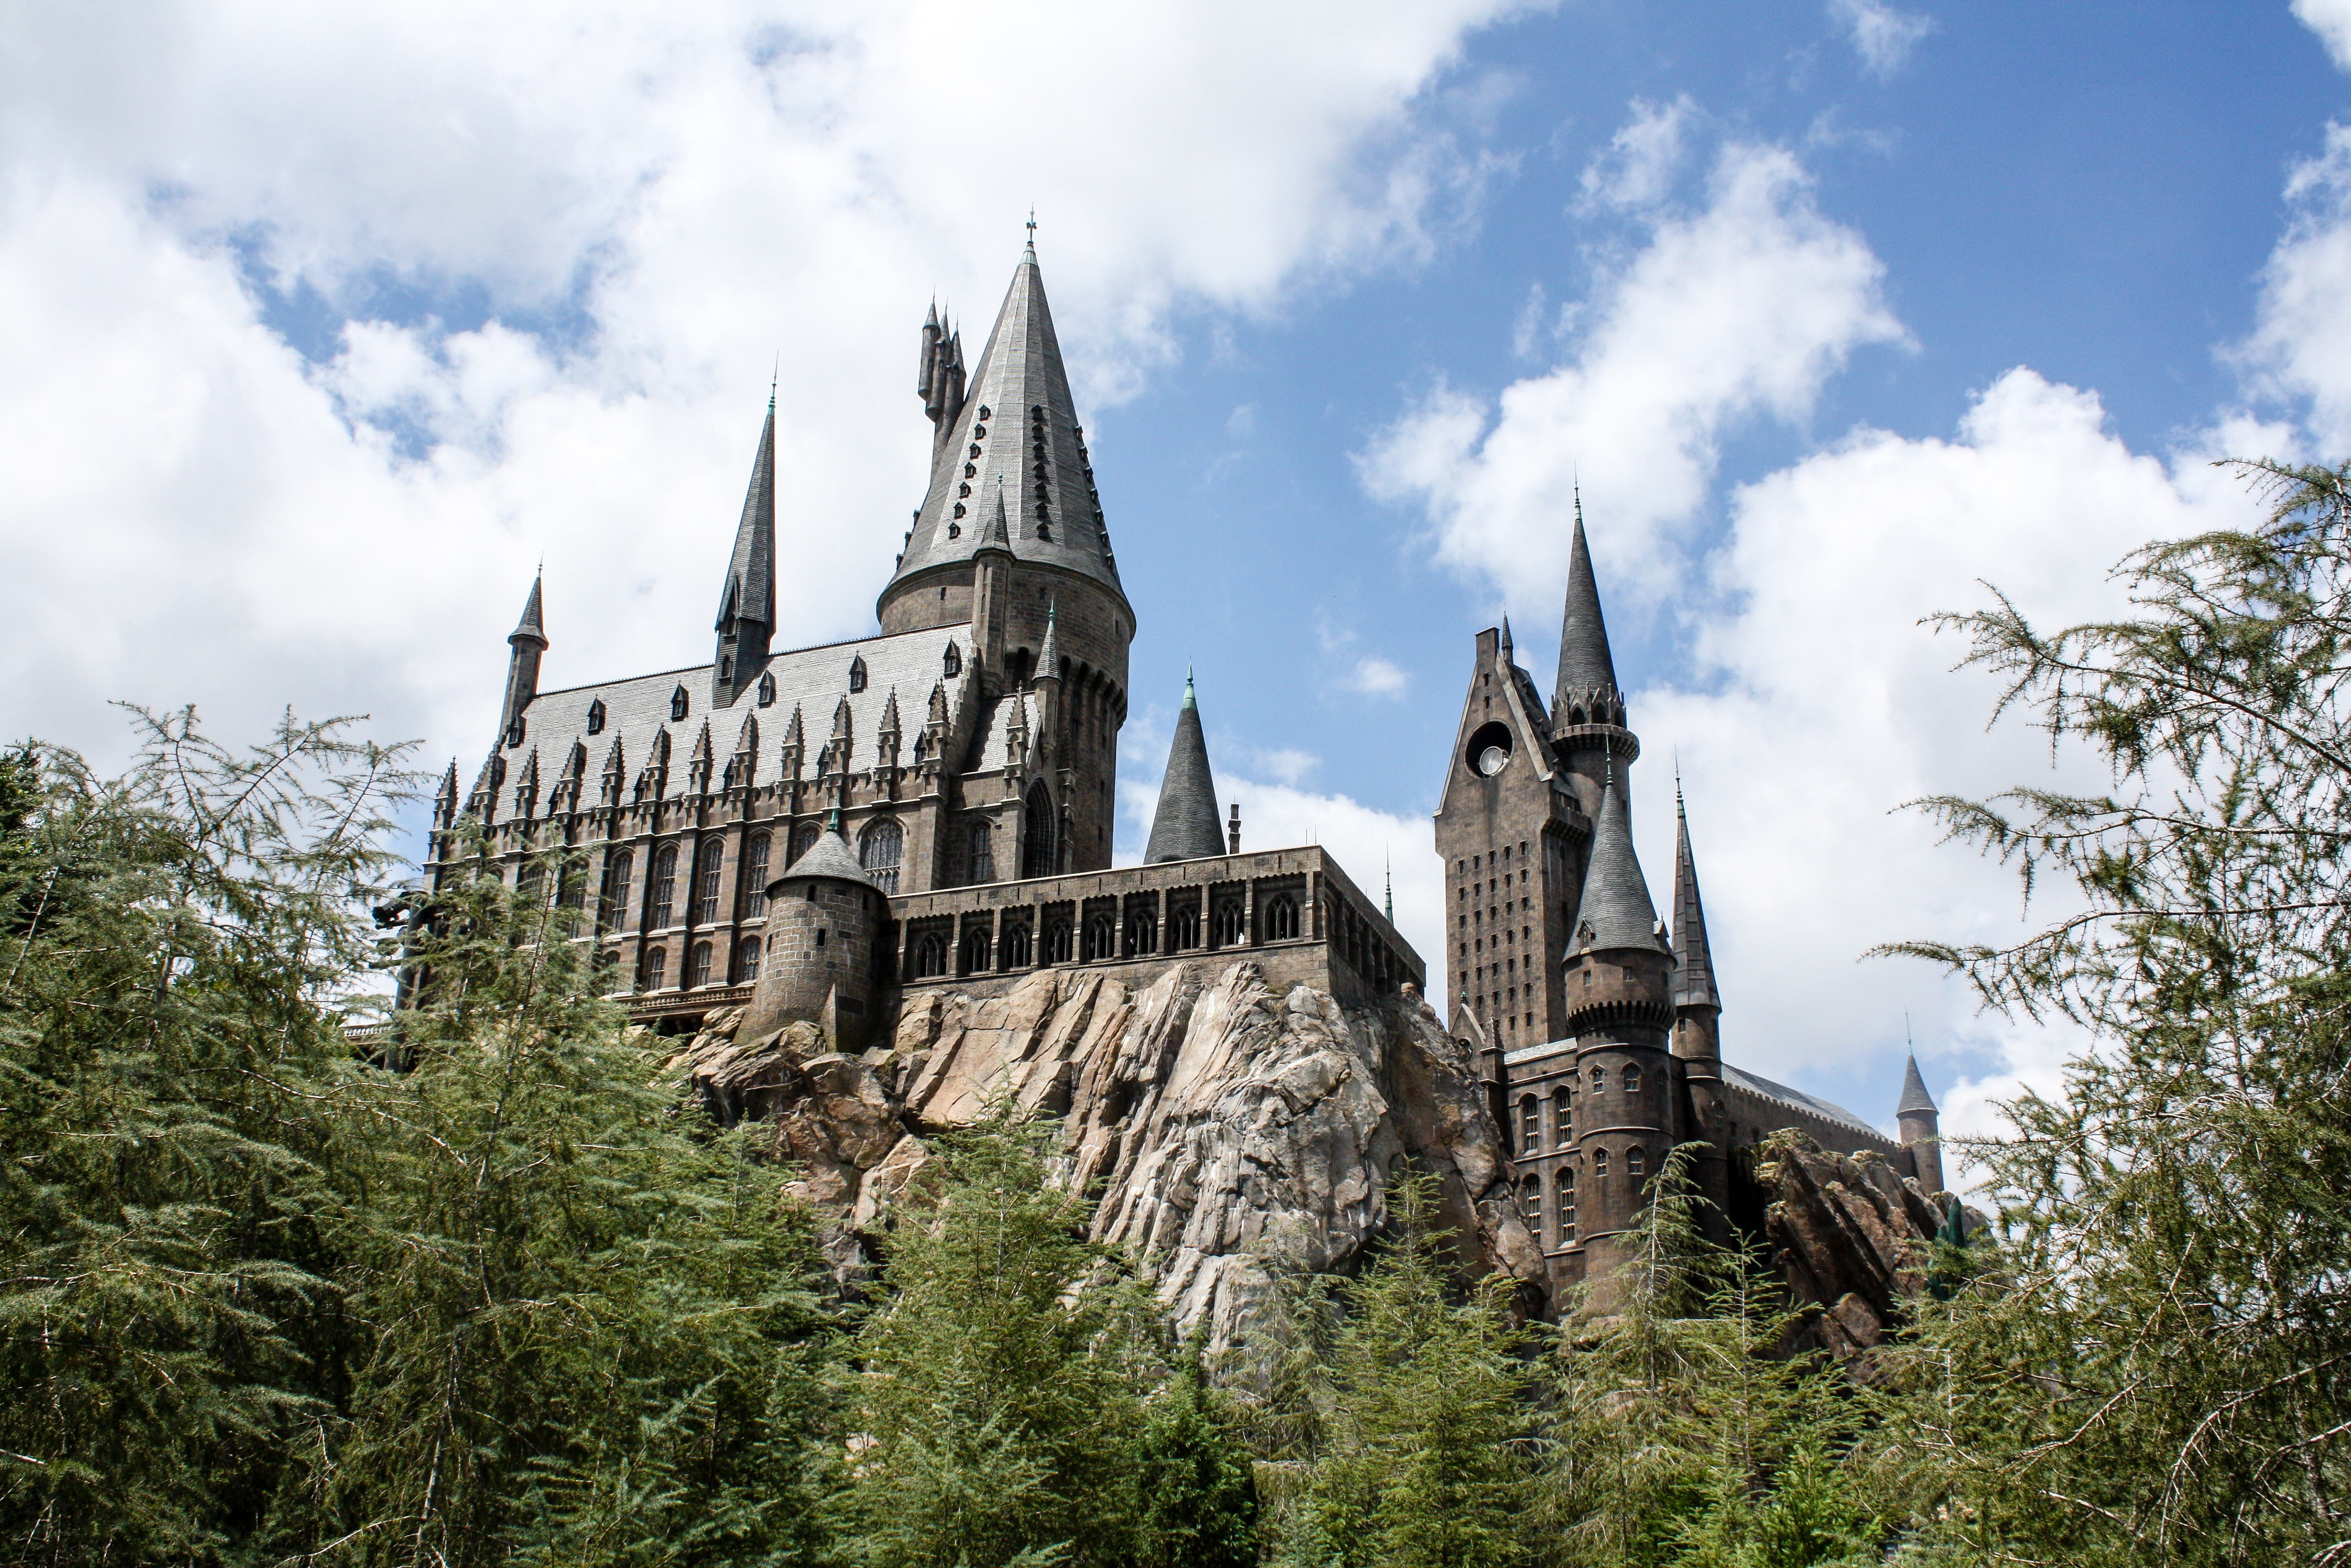 Exploring The Wizarding World Of Harry Potter Hogsmeade